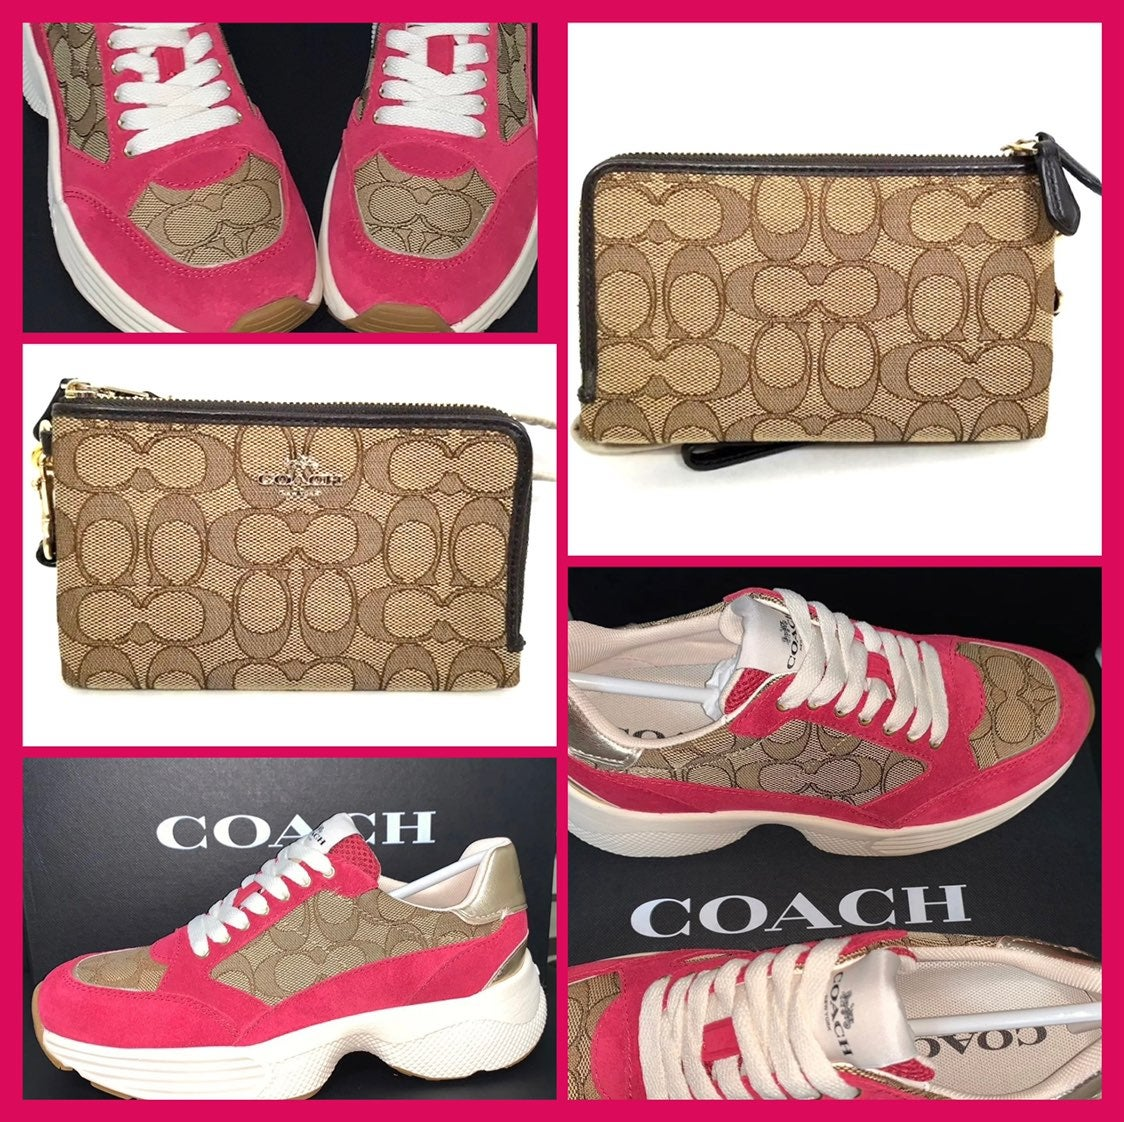 Coach Women's C152 Tech Runner Sneaker